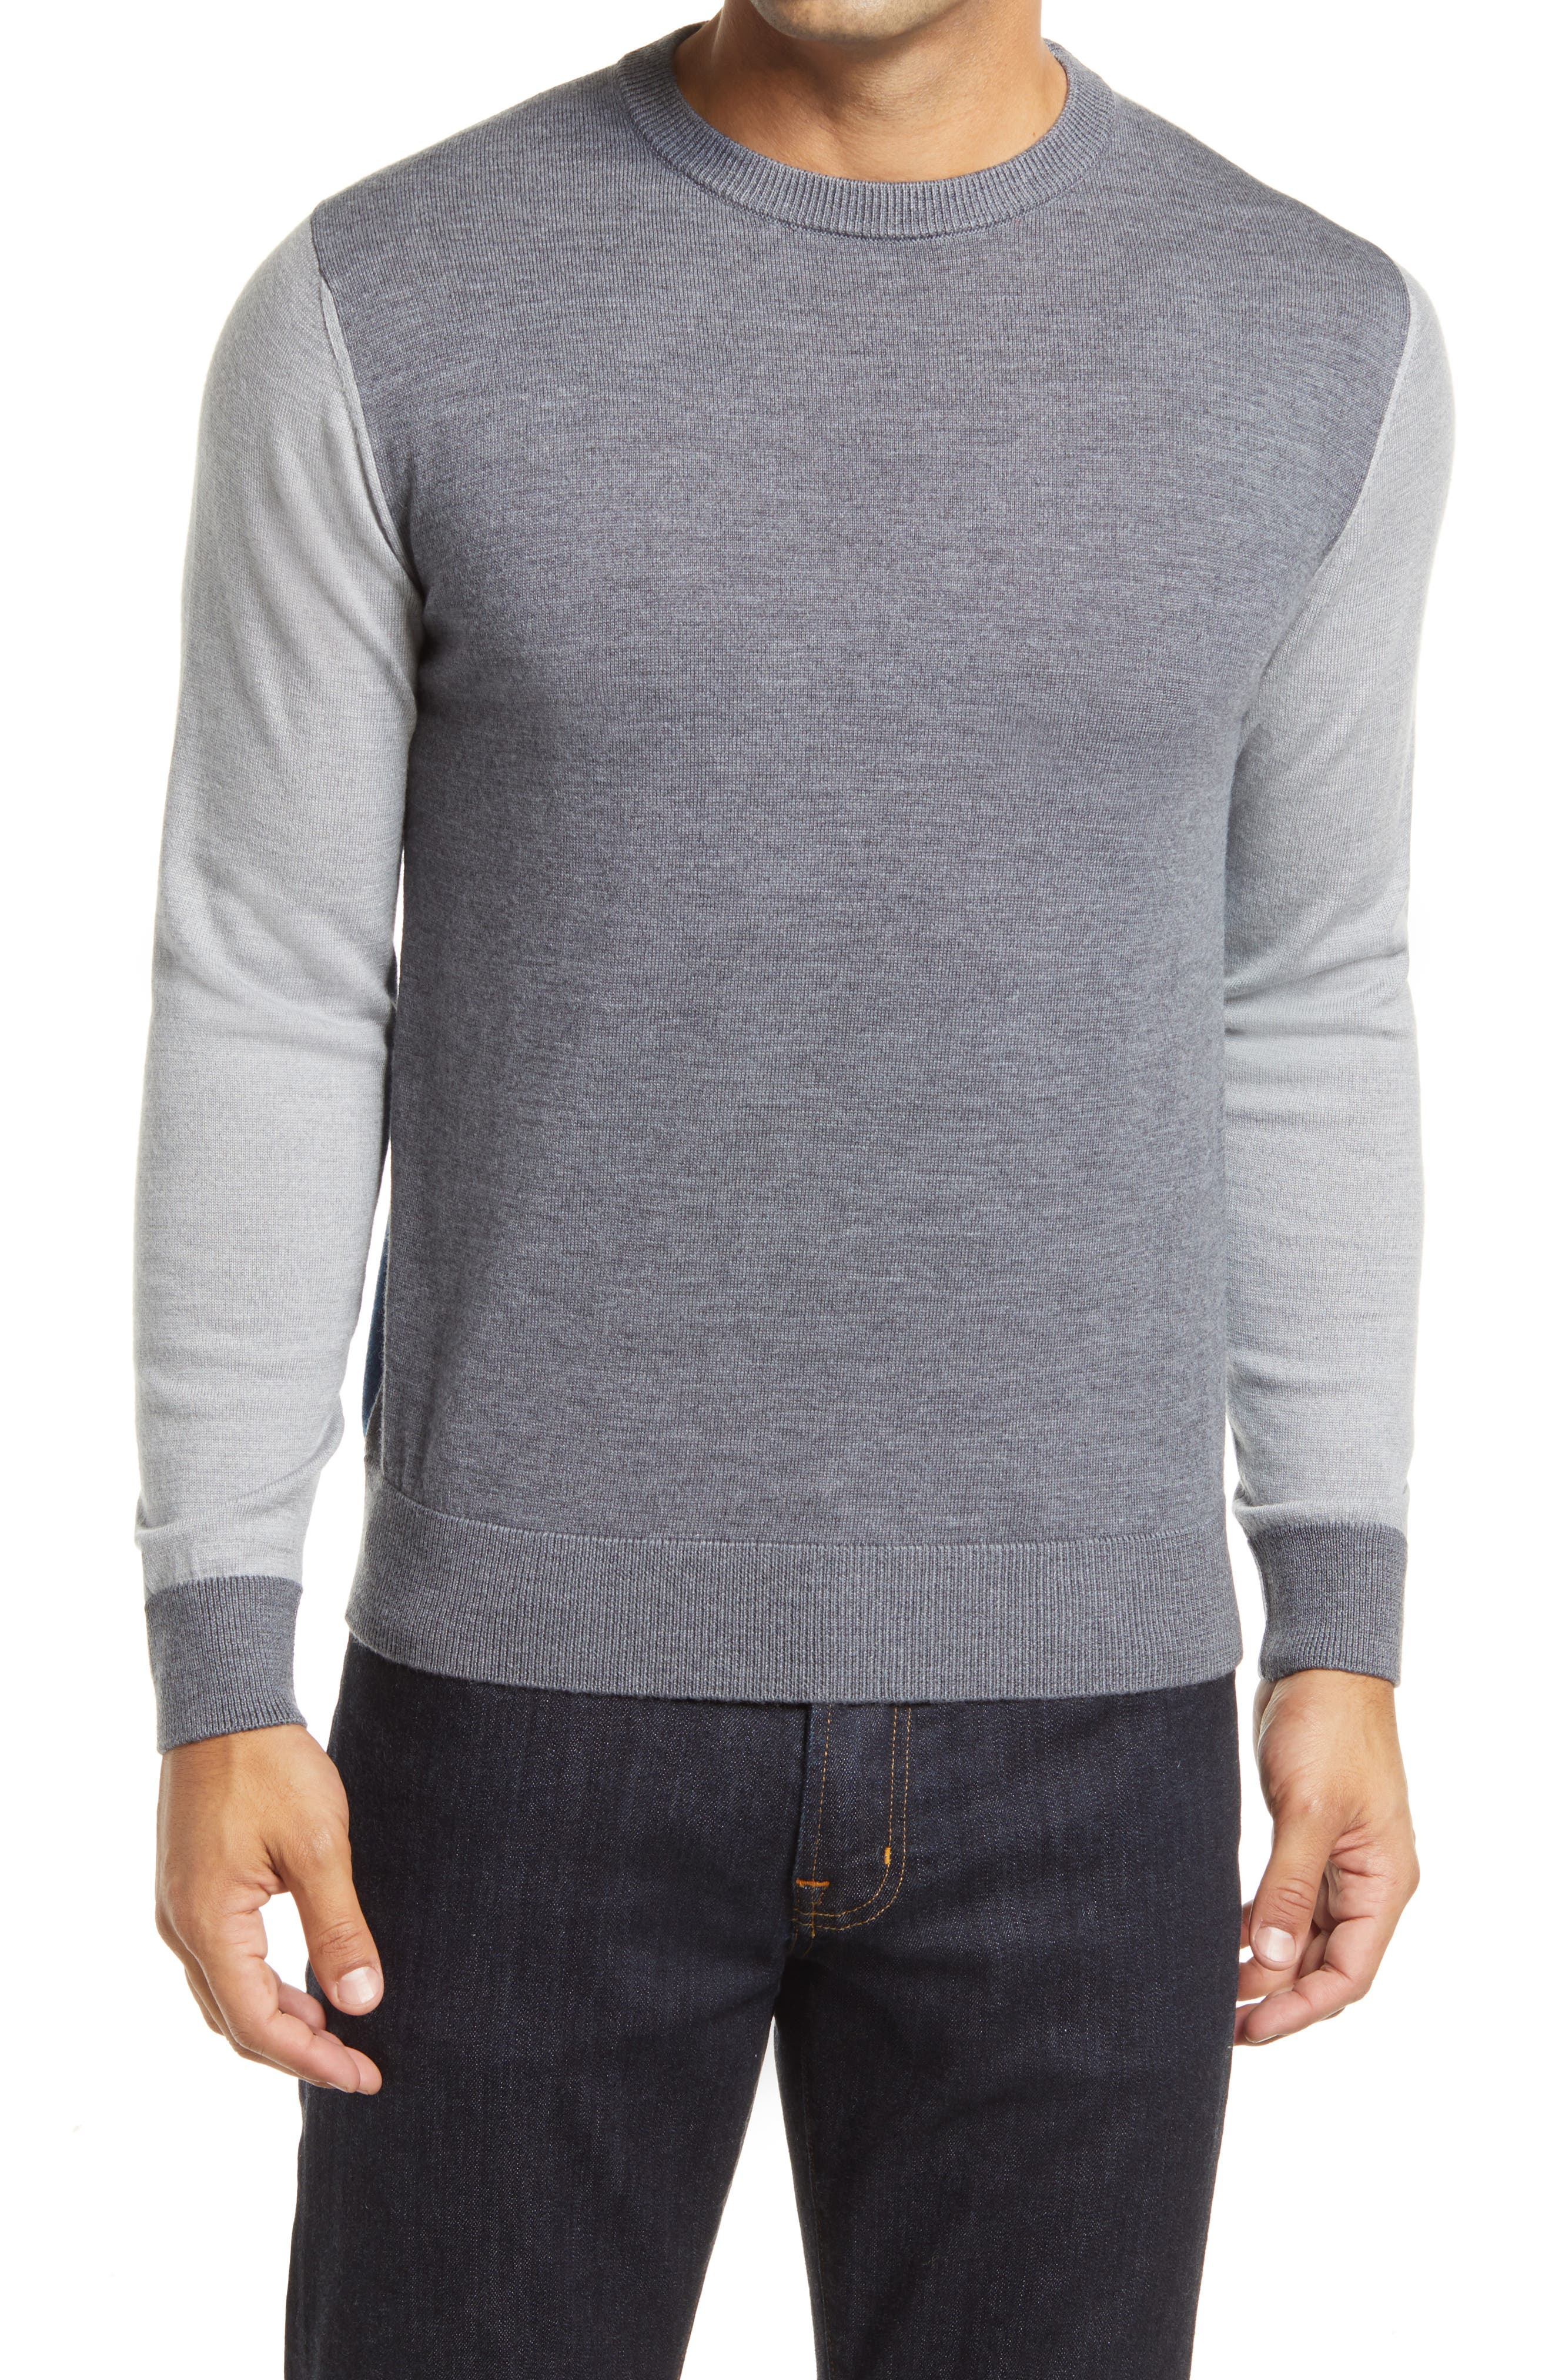 Contrast sleeves add a bit of punch to an Italian-crafted sweater knit from a soft merino wool blend. Style Name: Bugatchi Merino Wool Blend Crewneck Sweater. Style Number: 6103964. Available in stores.